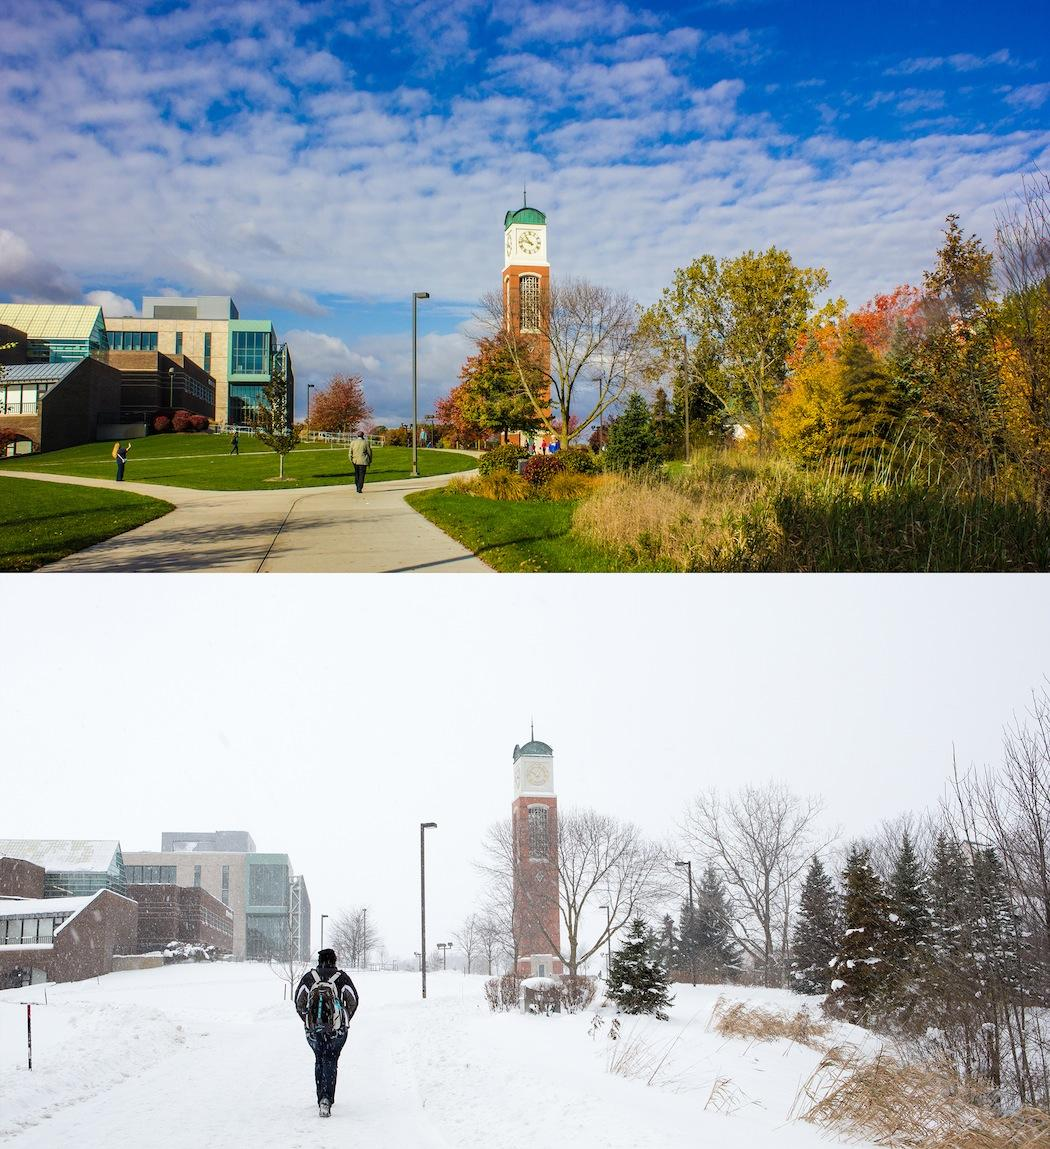 #tbt to early last week, when campus looked like this (top) and we didn't have 30.8 inches of snow (bottom). http://t.co/vAePxnN2wo